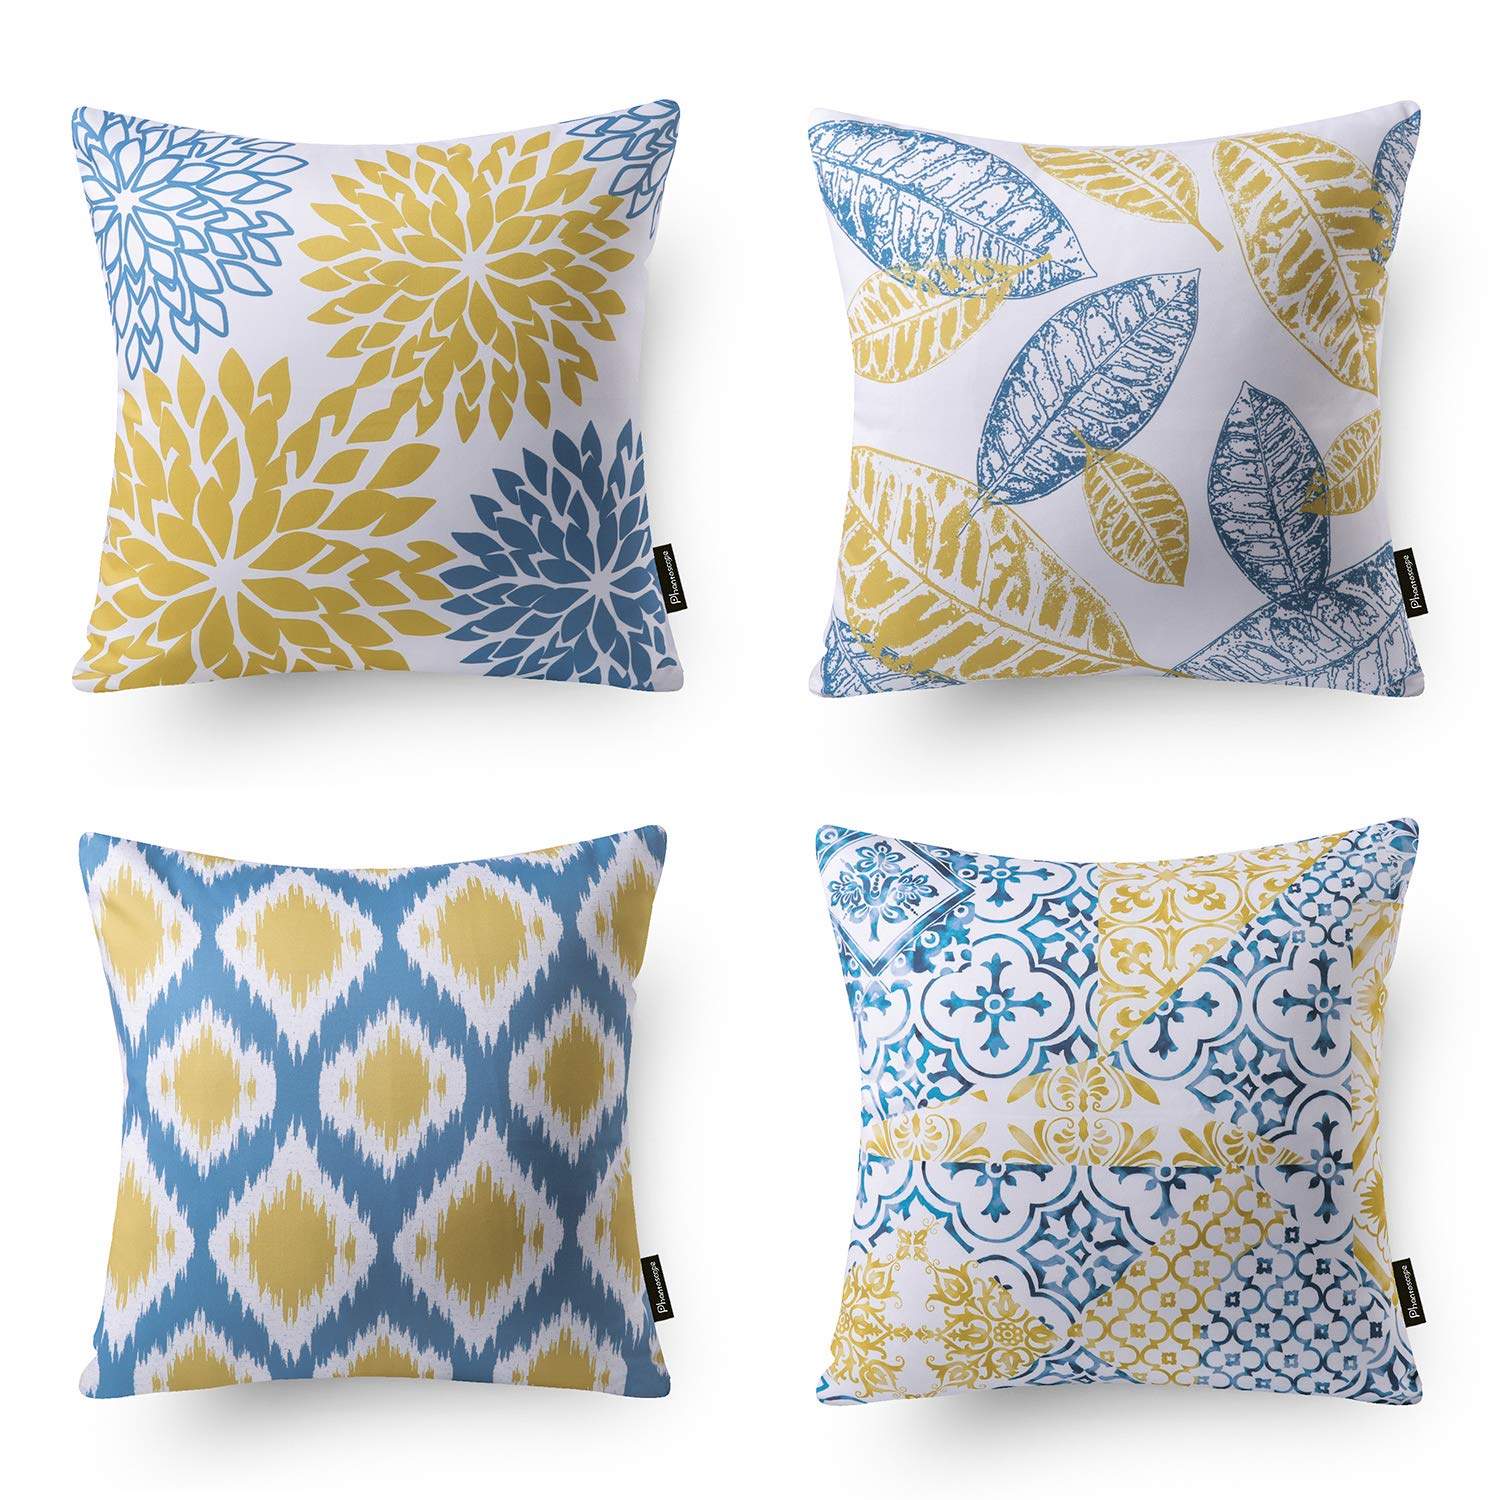 Phantoscope Set of 4 New Living Series Decorative Yellow and Blue Throw Pillow Case Cushion Cover 18 x 18 inches 45 x 45 cm